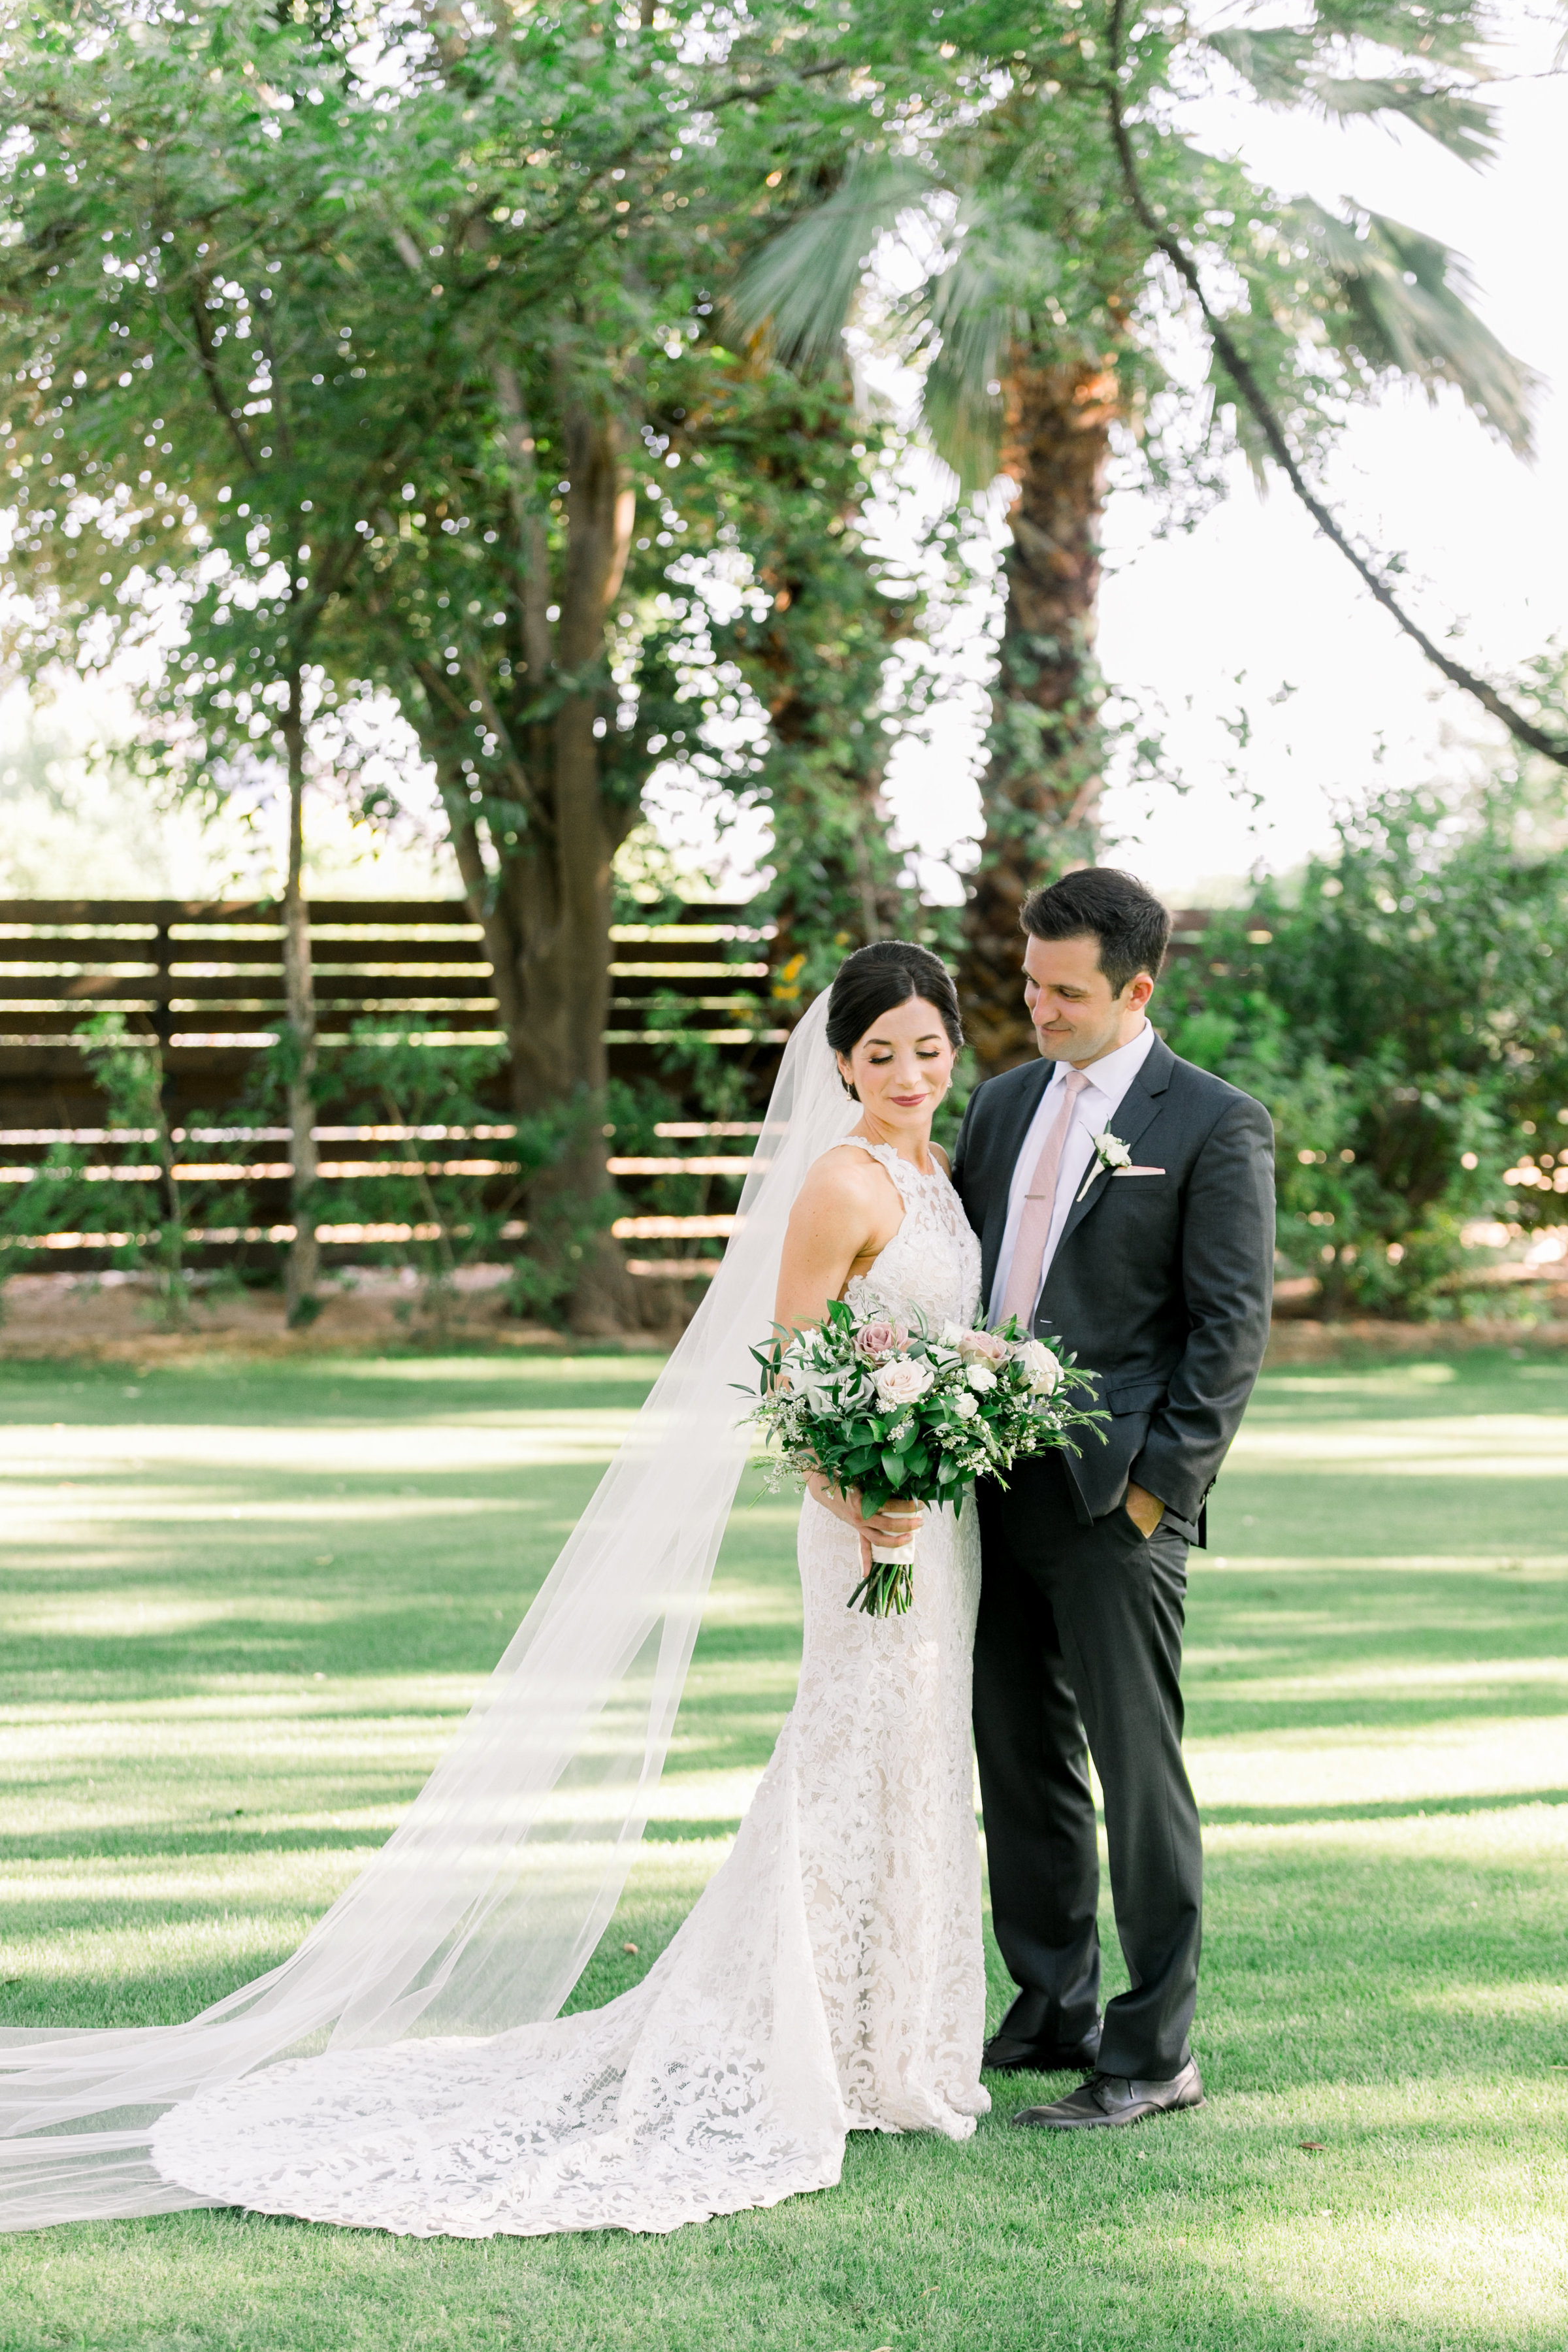 Karlie Colleen Photography - Venue At The Grove - Arizona Wedding - Maggie & Grant -69